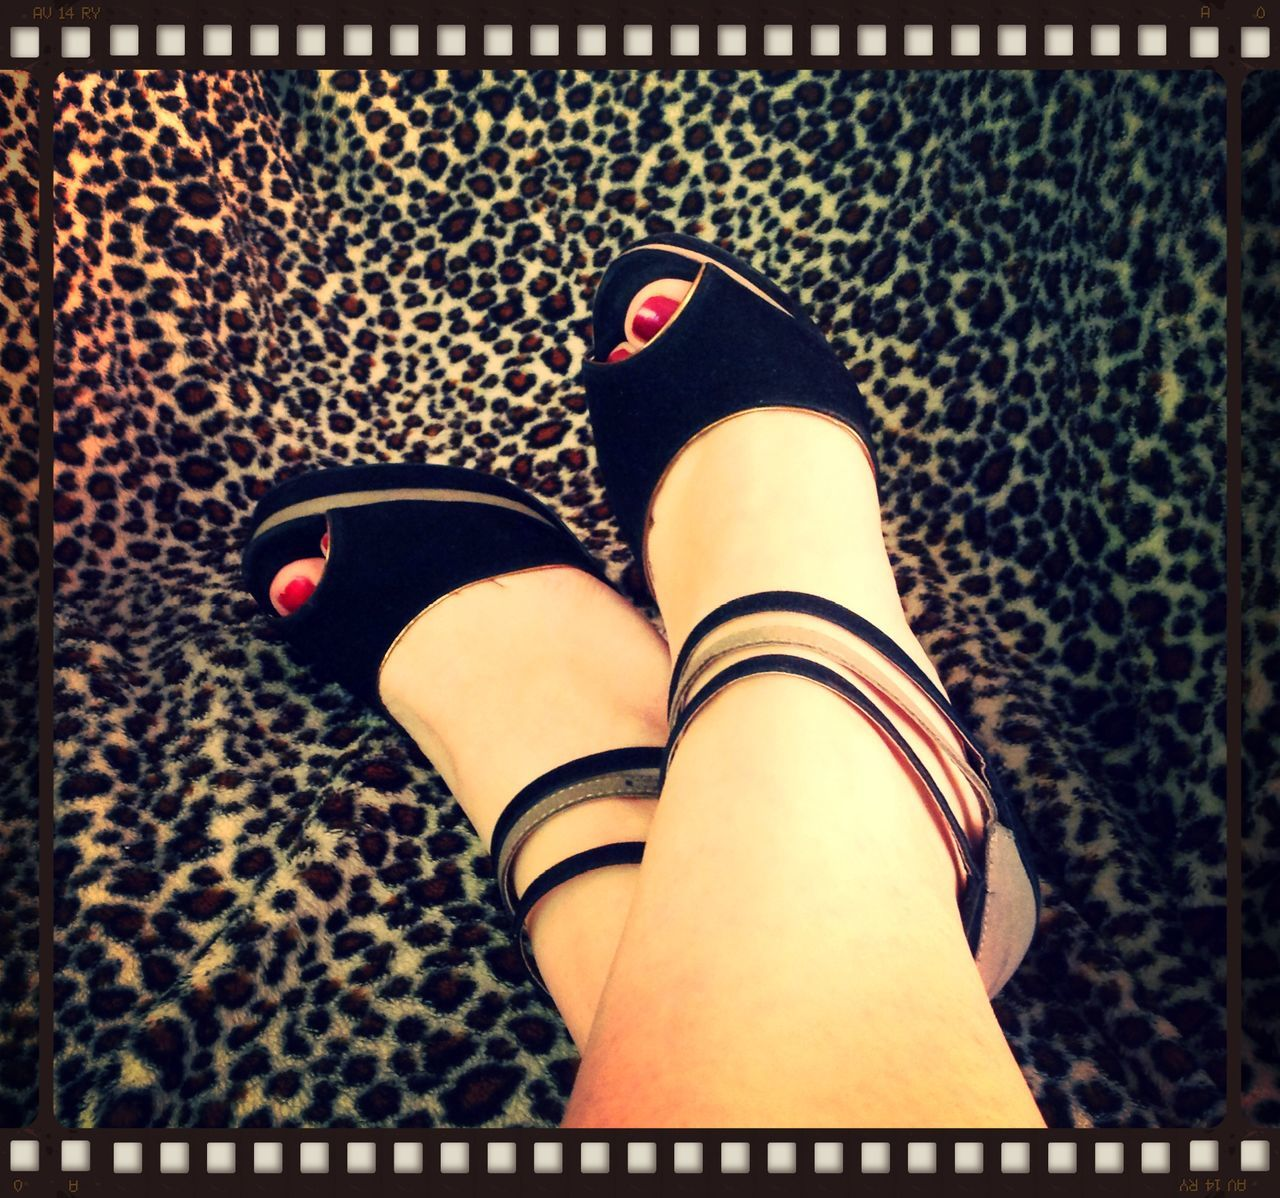 High angle view of woman wearing shoes on leopard print fabric